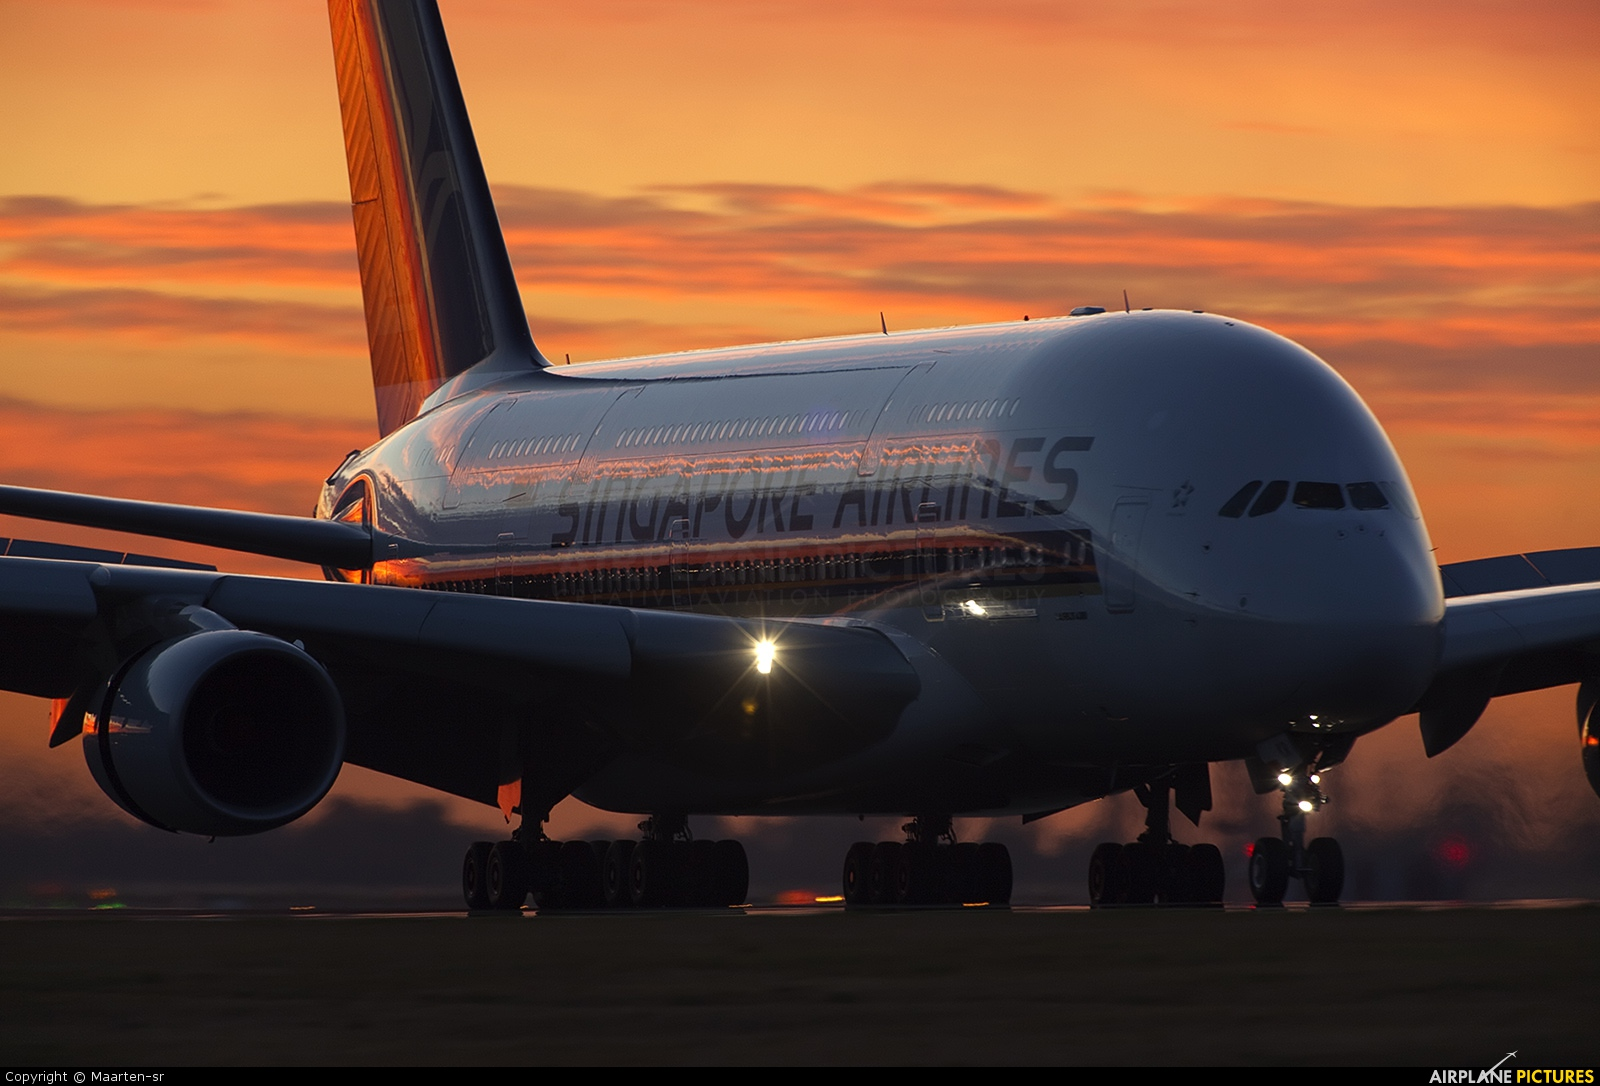 Singapore Airlines 9V-SKR aircraft at Paris - Charles de Gaulle